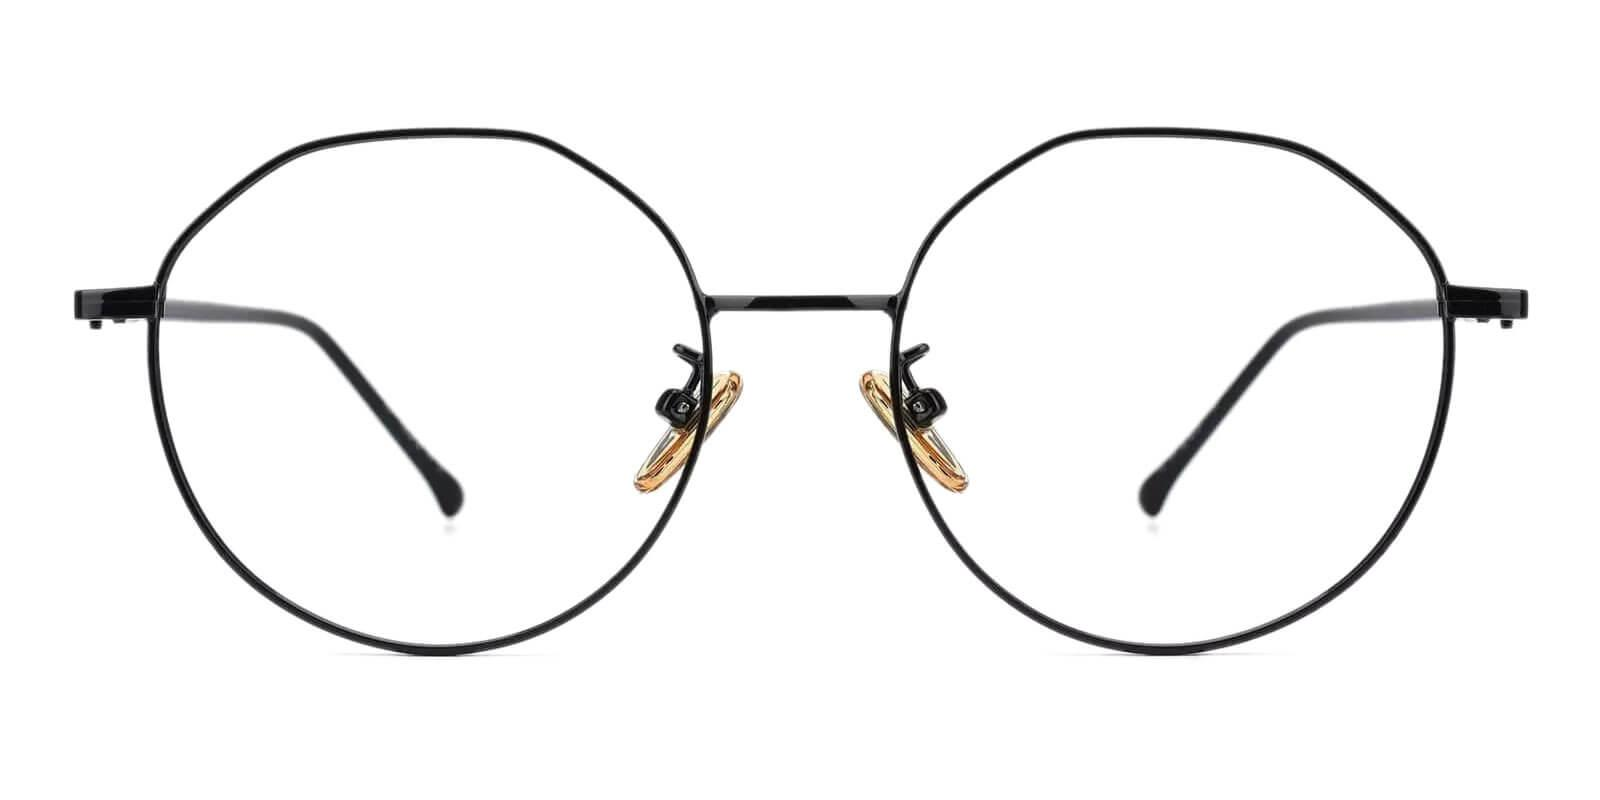 Kawk Black Metal Eyeglasses , NosePads Frames from ABBE Glasses